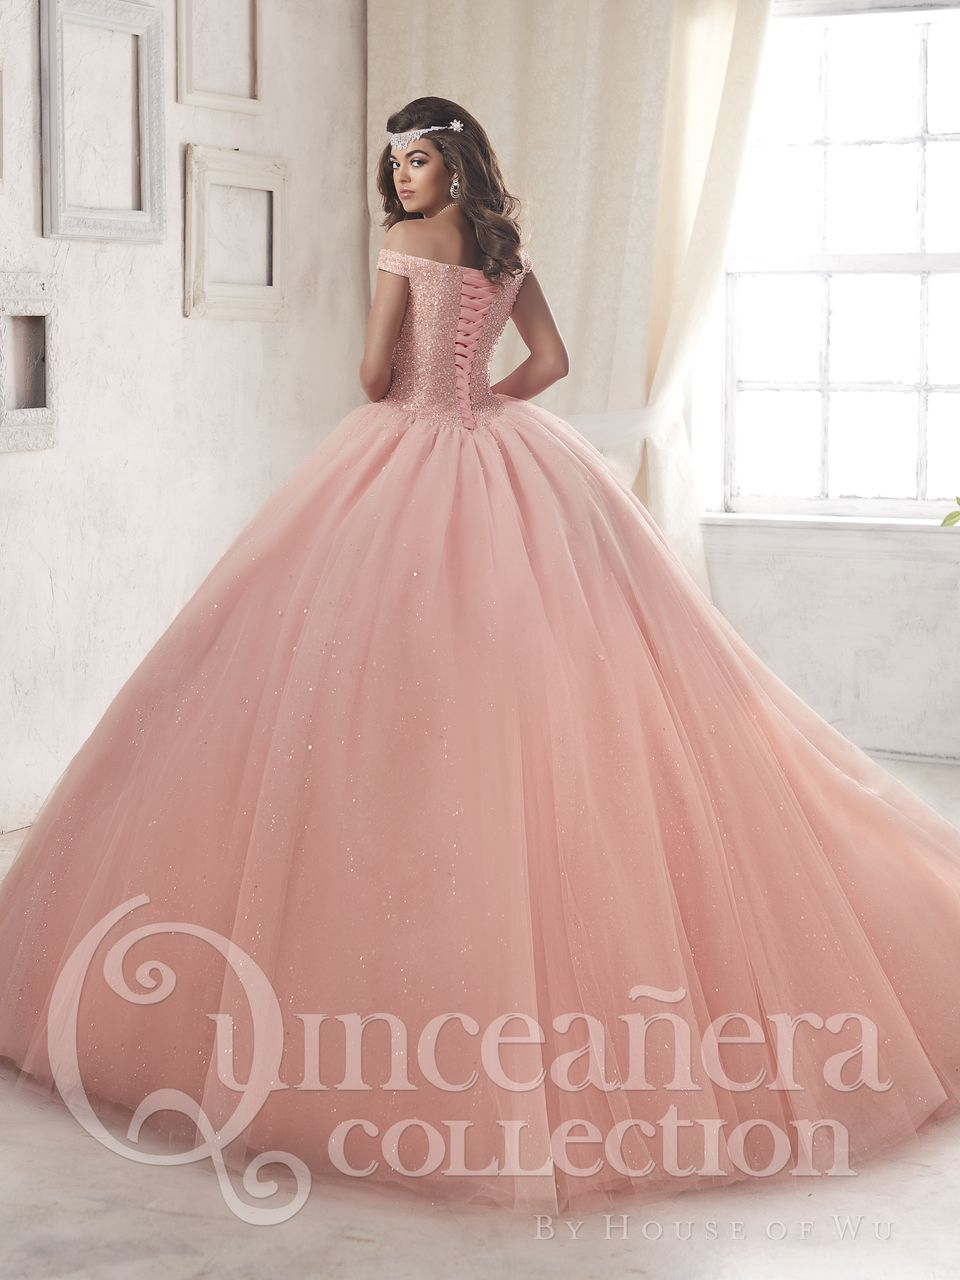 Quinceanera Dress #26844 | Quinceanera ideas, 15 dresses and Quince ...